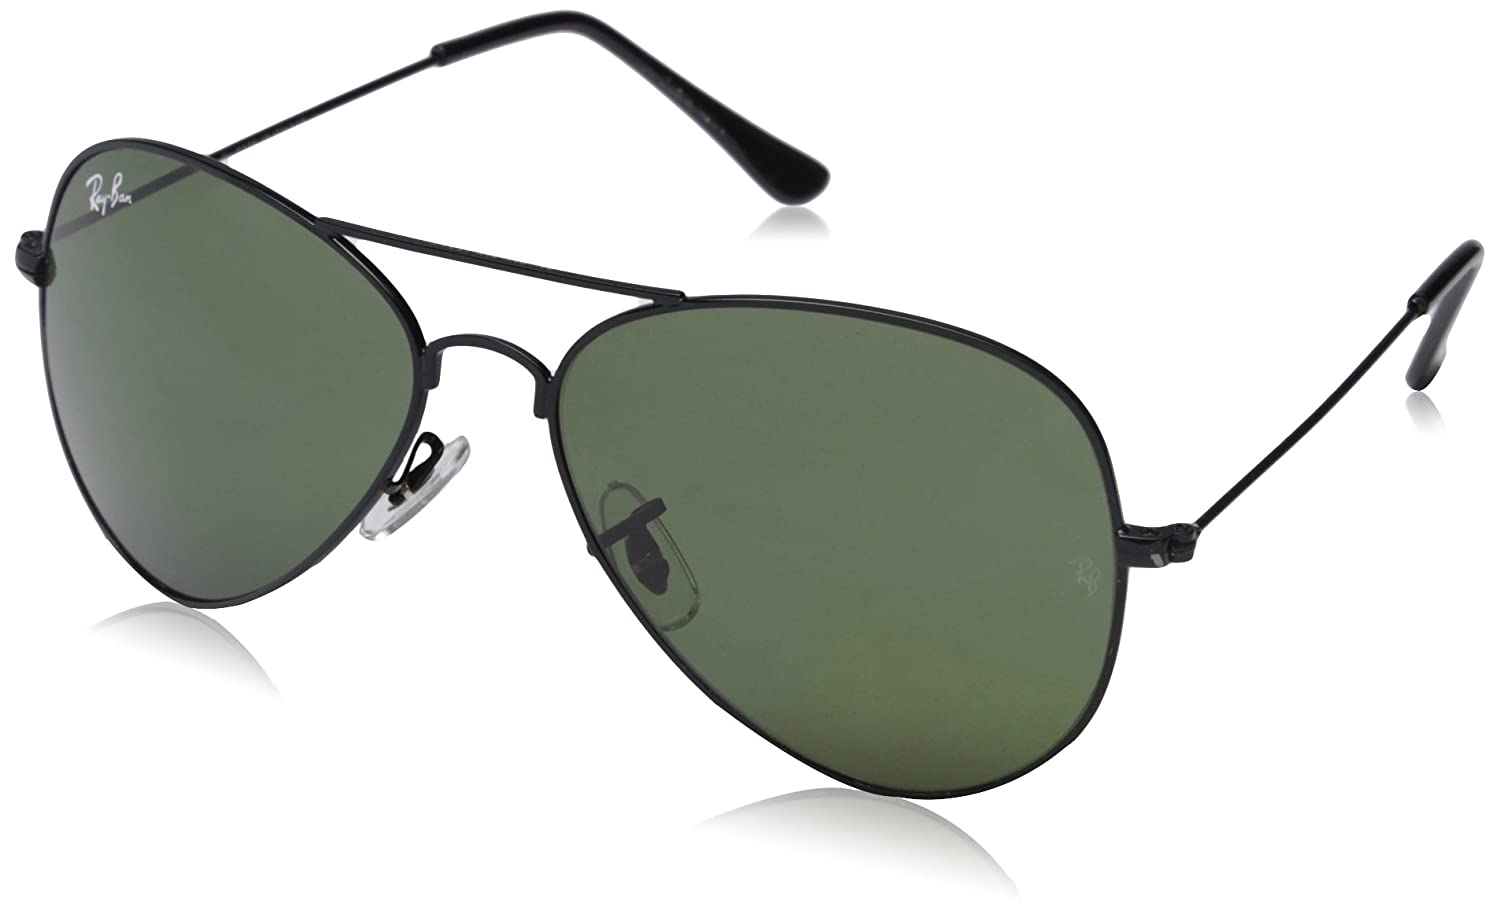 Amazon.com  Authentic Ray-Ban Sunglasses RB3026 color L2821  Clothing 30a3067951a6